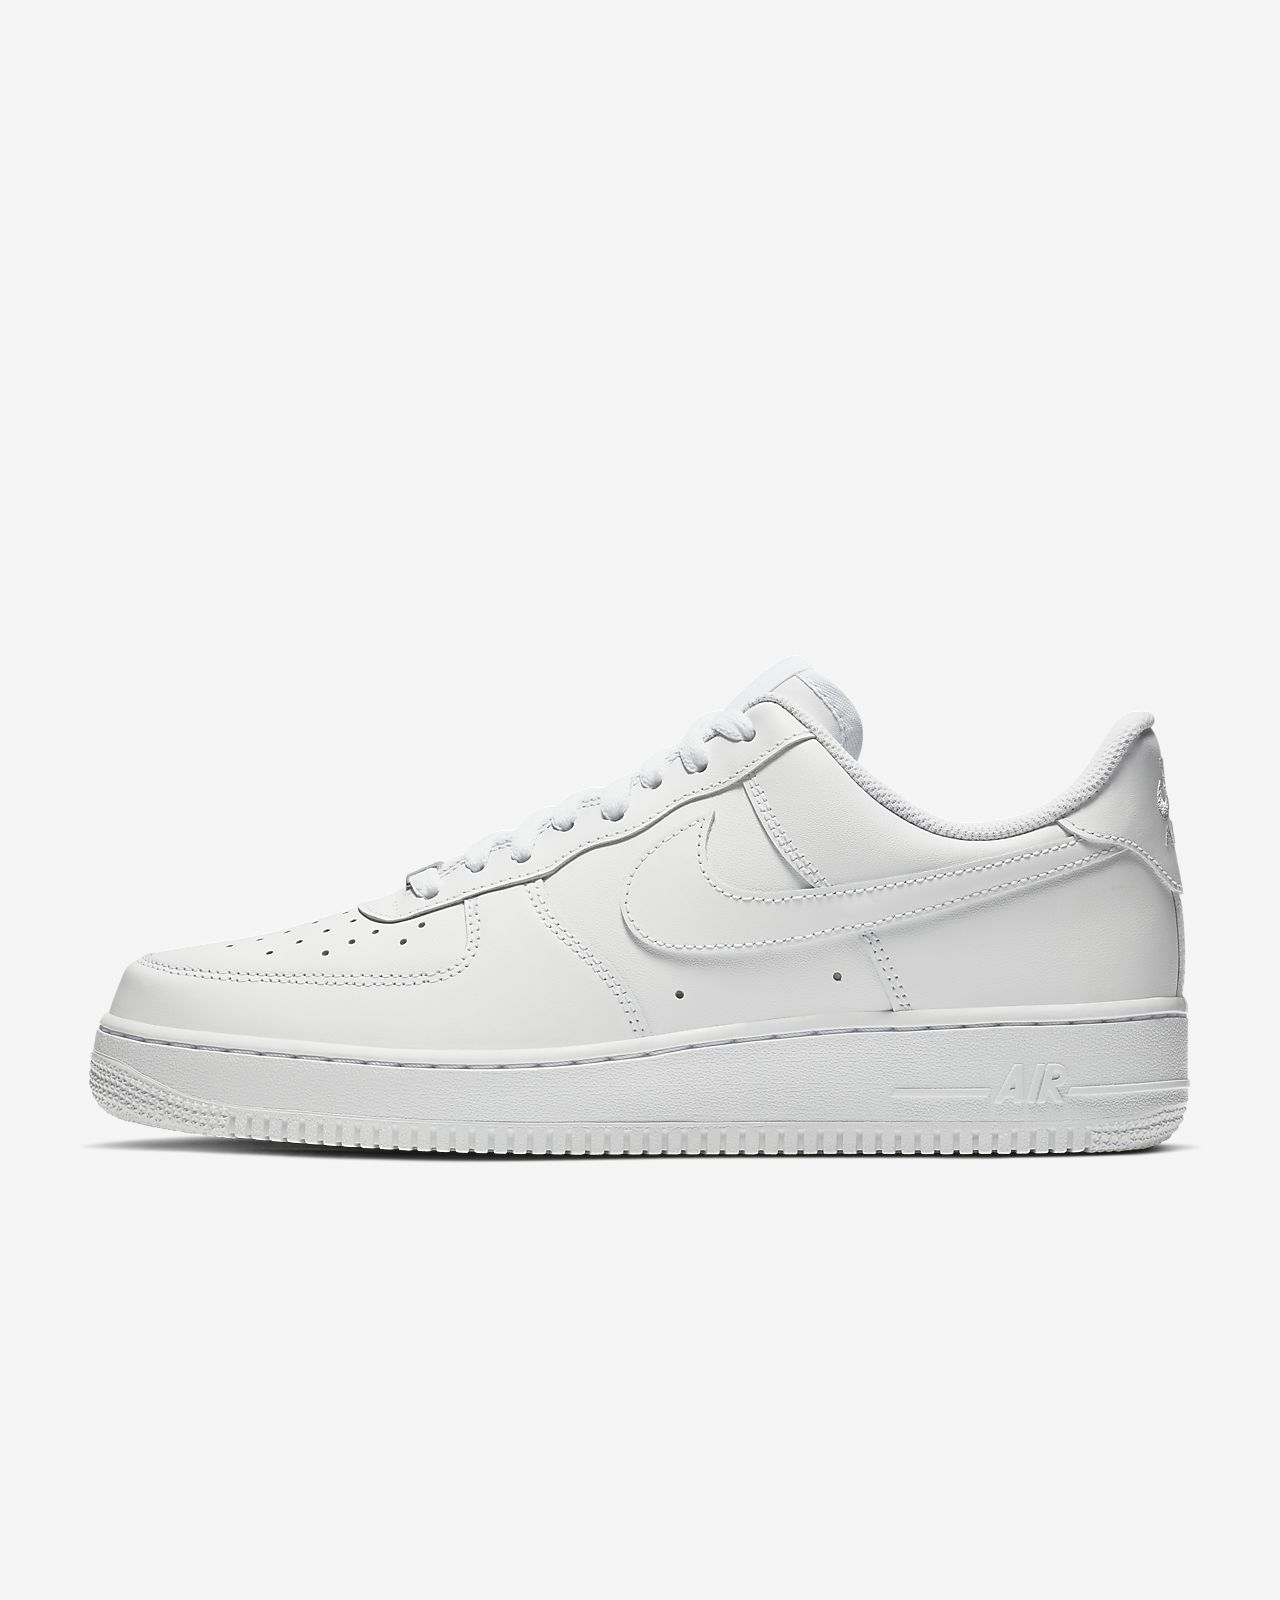 new product 386e8 27c6e Low Resolution Nike Air Force 1  07 Shoe Nike Air Force 1  07 Shoe